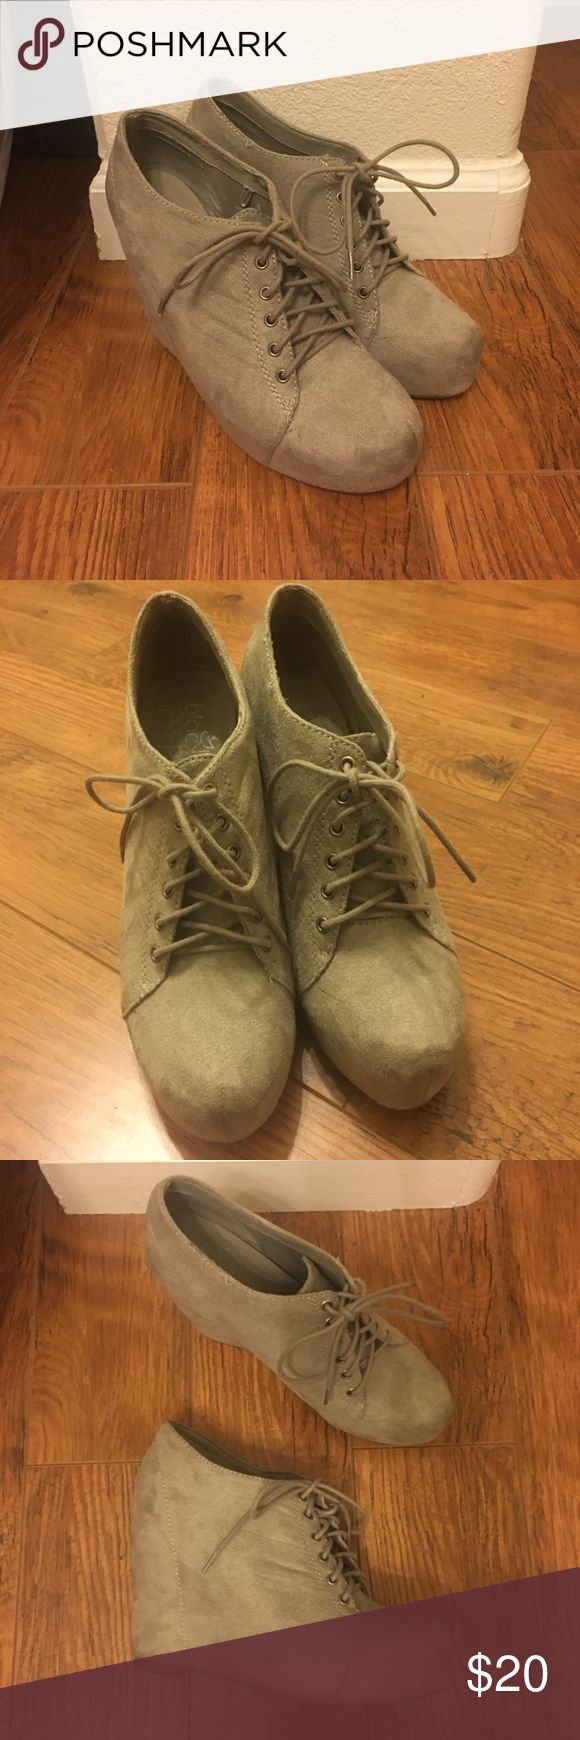 Bootie/wedge heels Taupe suede bootie heels Size 8 PacSun Shoes Wedges